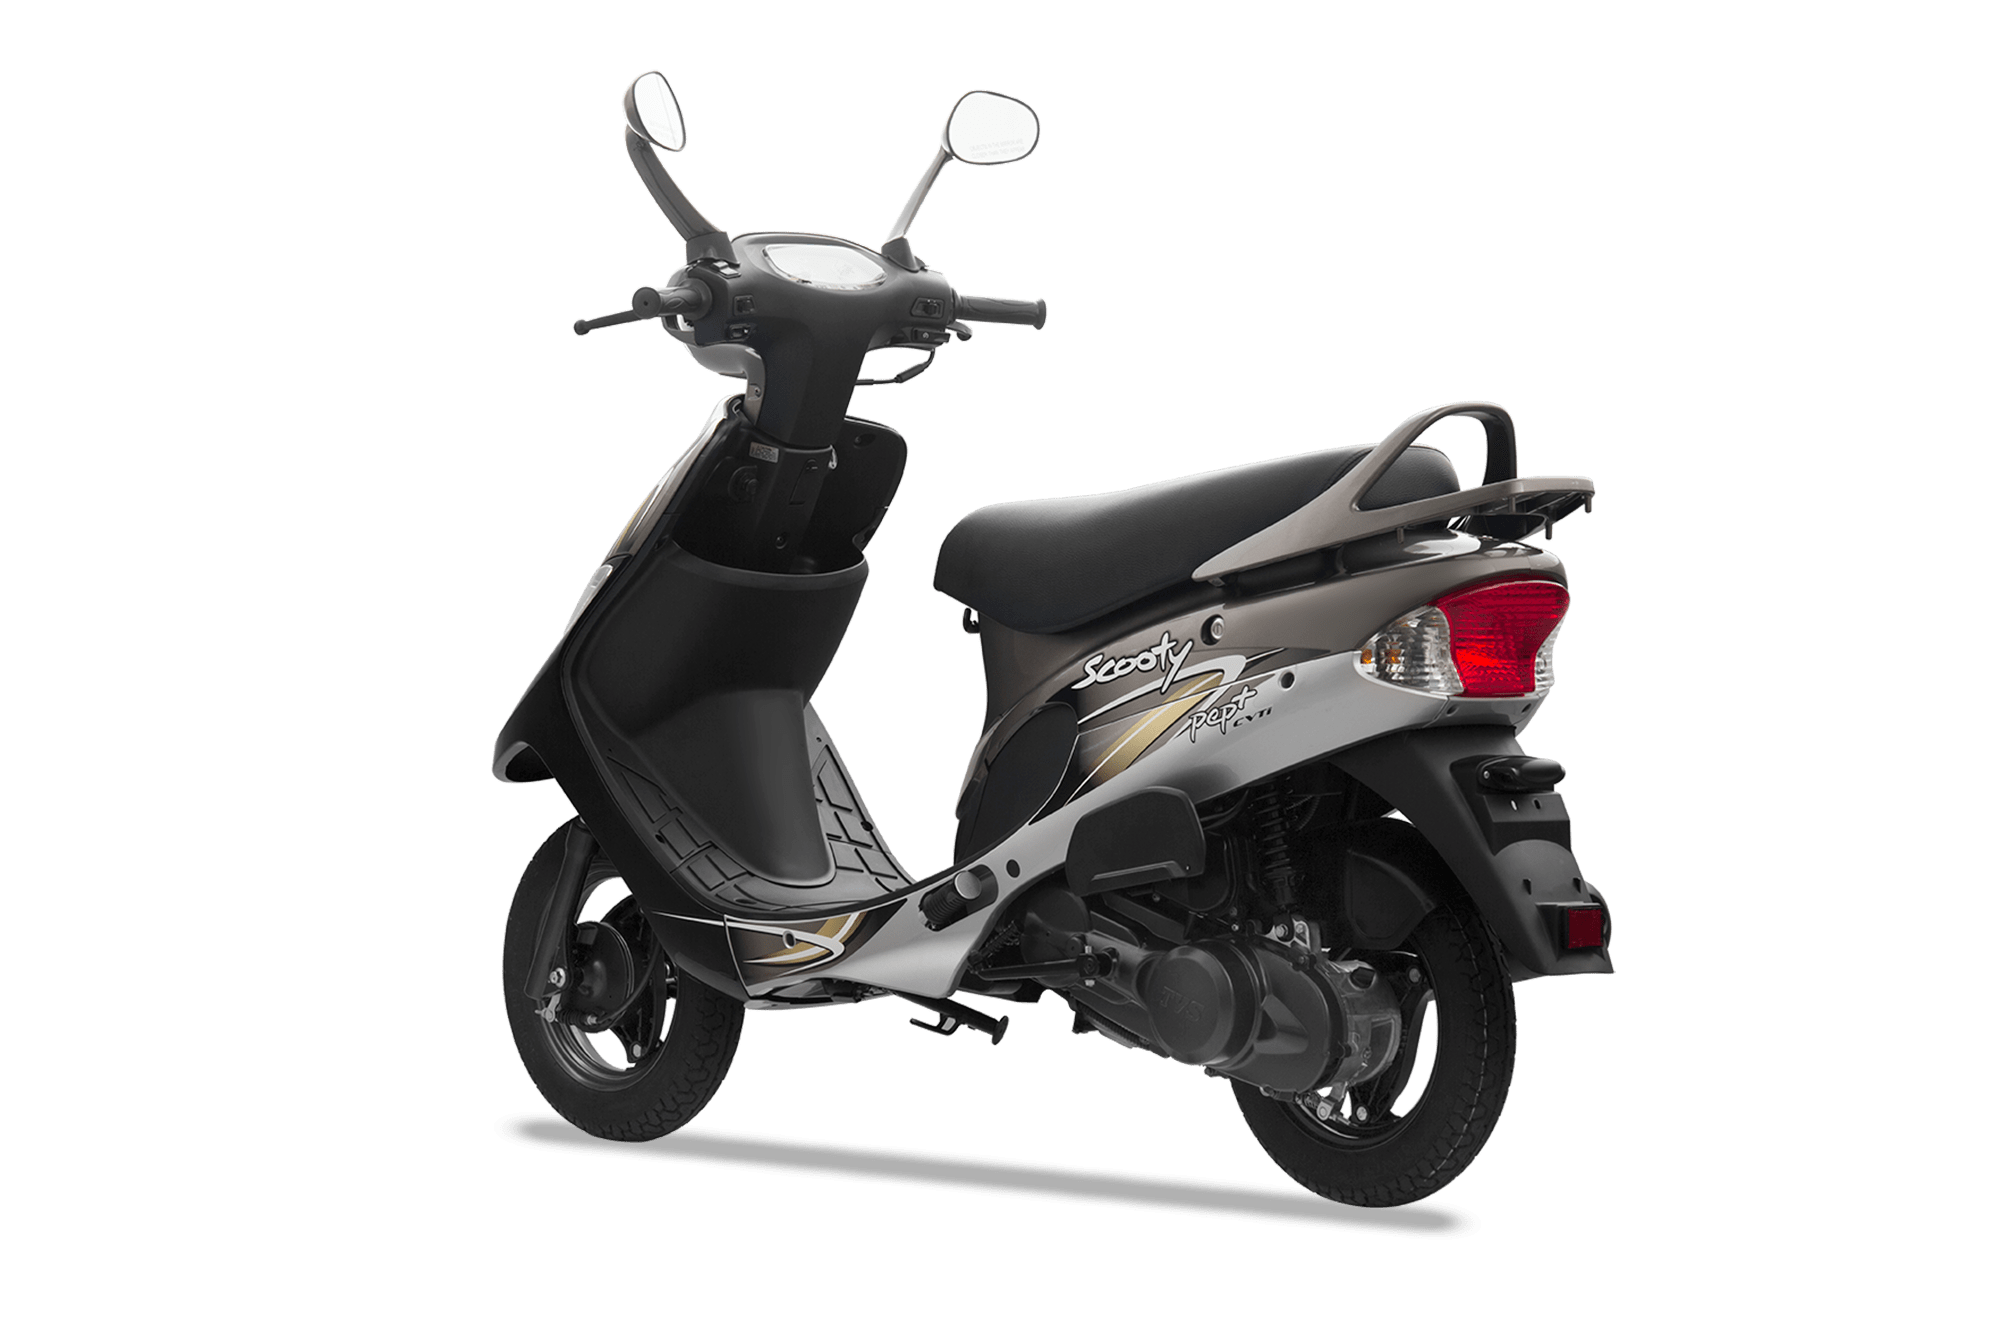 Tvs pep plus photo. Motorcycle clipart scooty